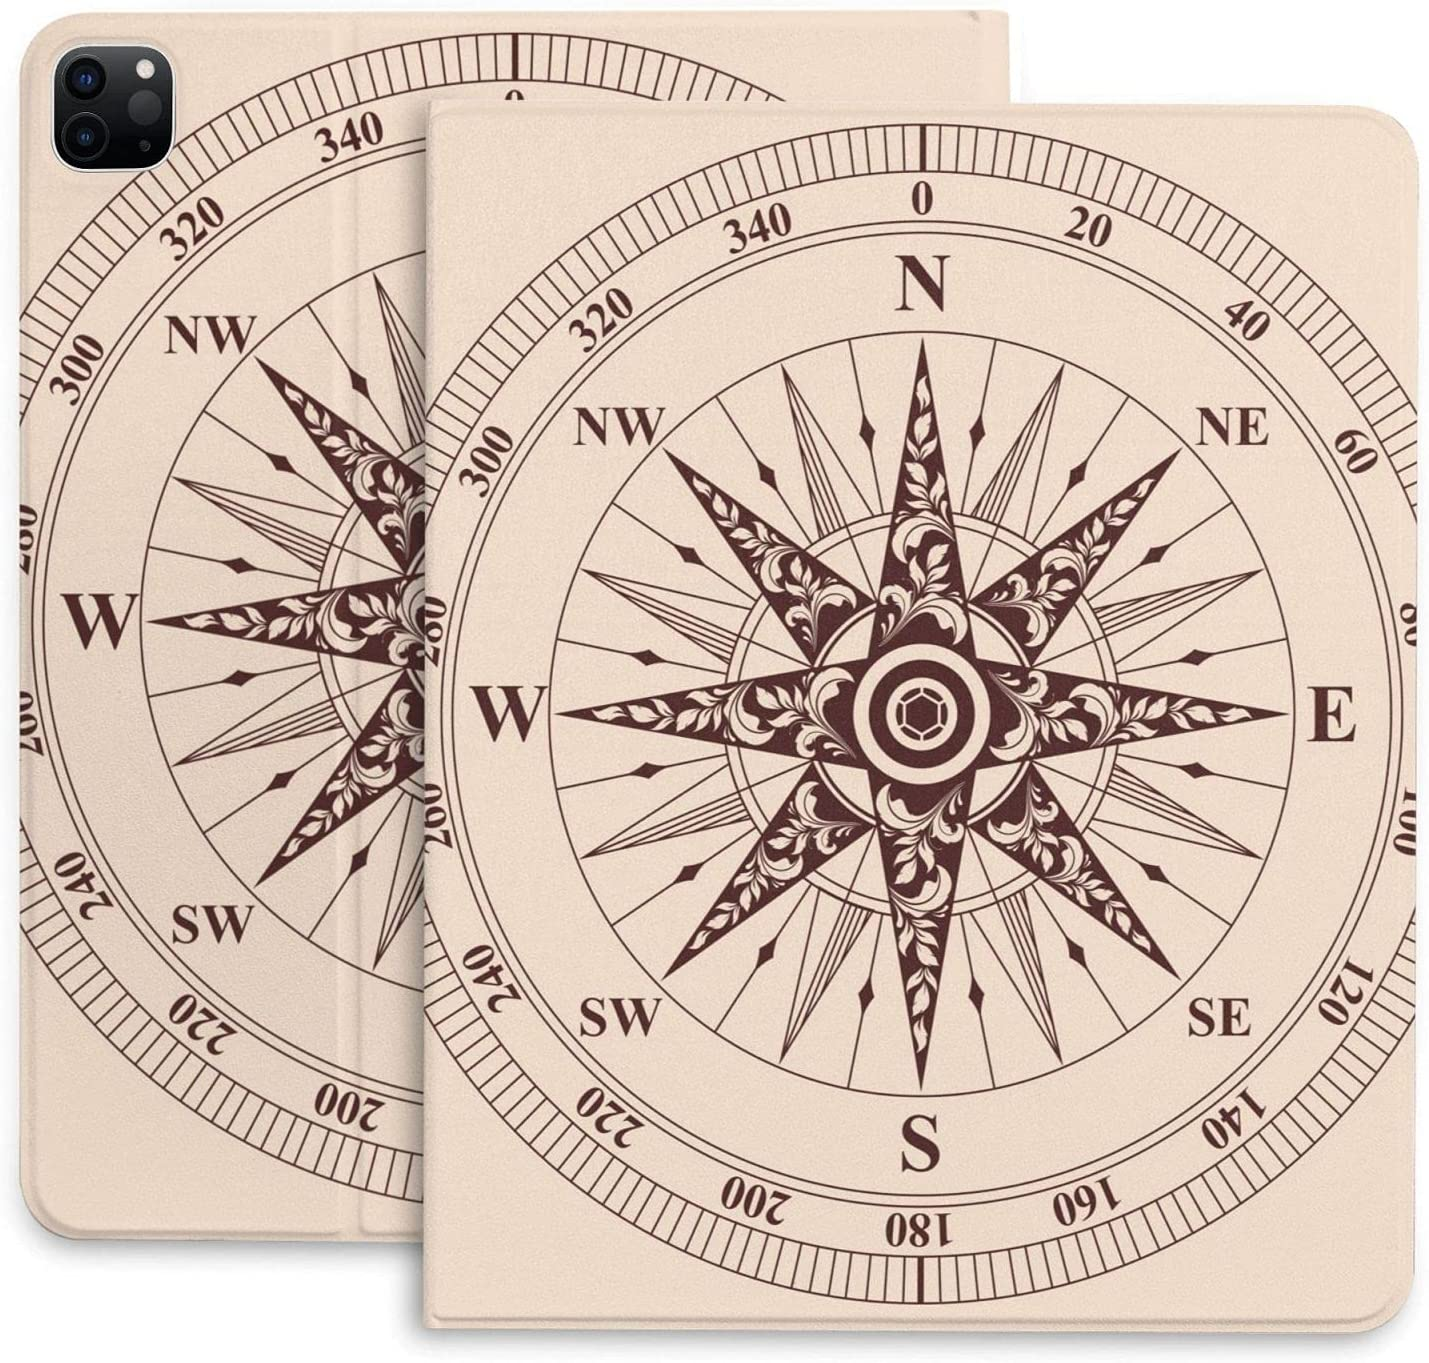 Compass Case for Ipad Pro Ranking TOP19 12.9 Gen Viewi Tablet in 2020 Reservation 4th